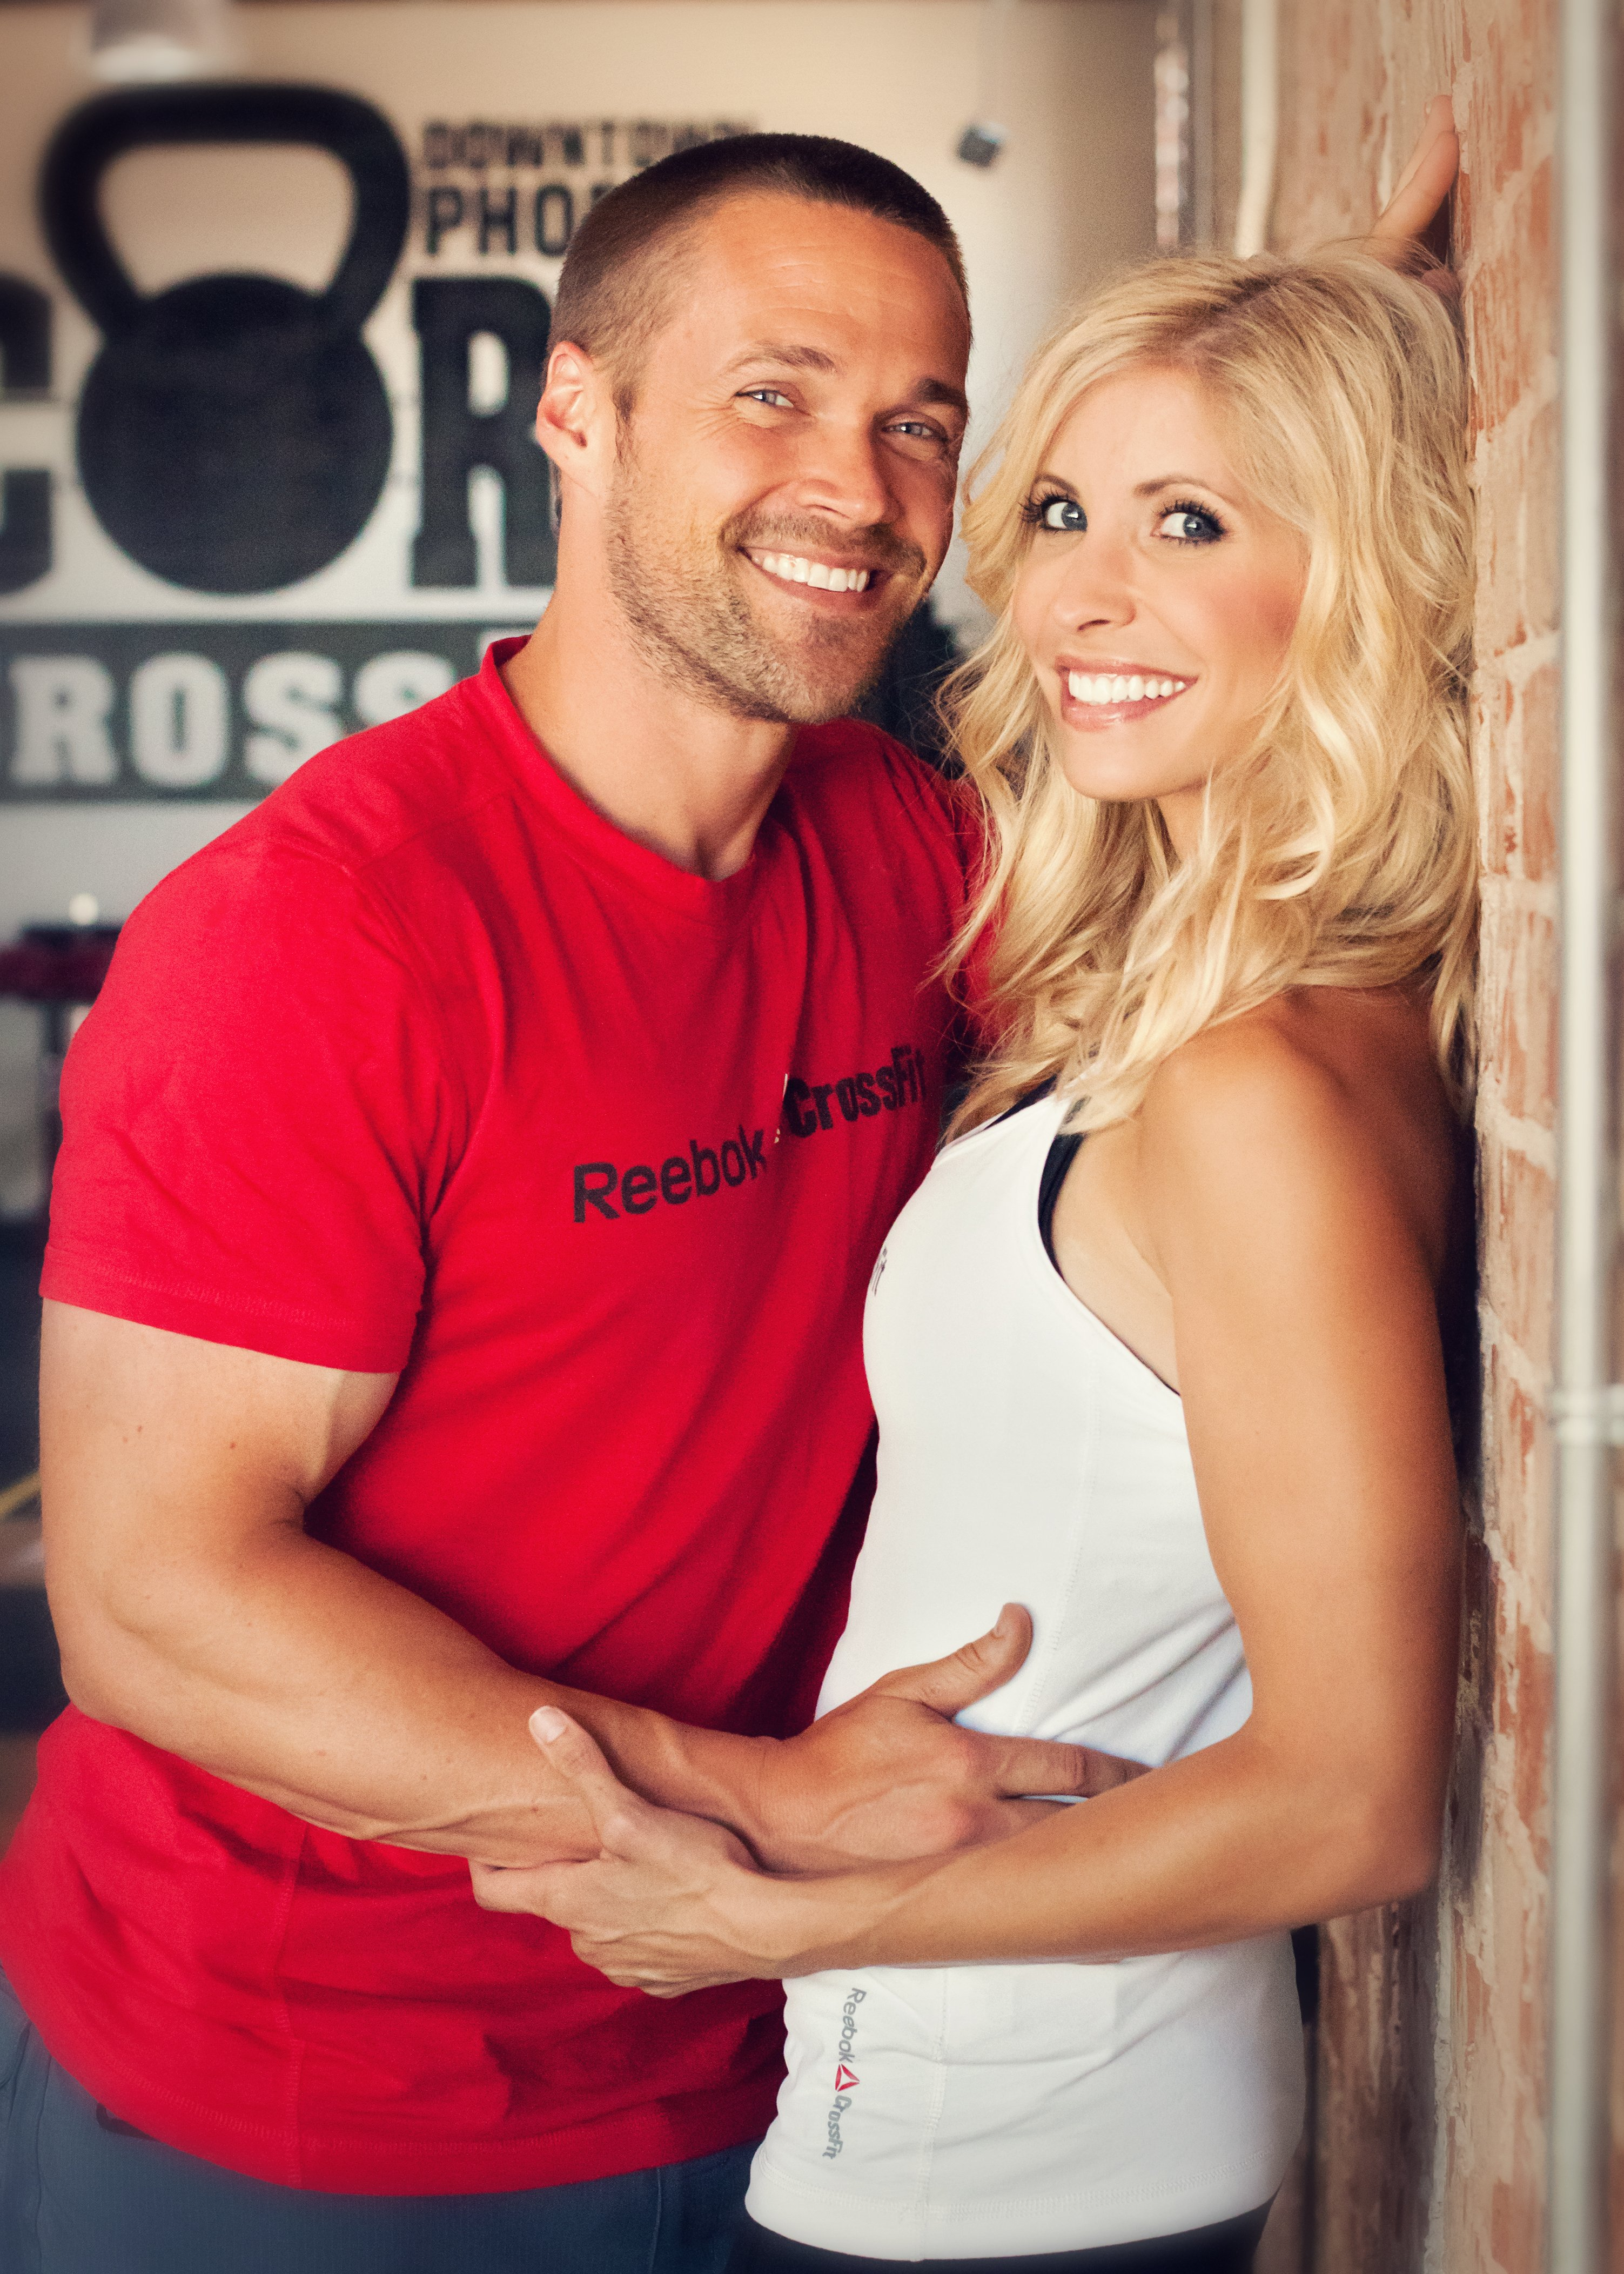 Celebrity Trainers Chris and Heidi Powell - Learn more at http://HeidiPowell.net/3761